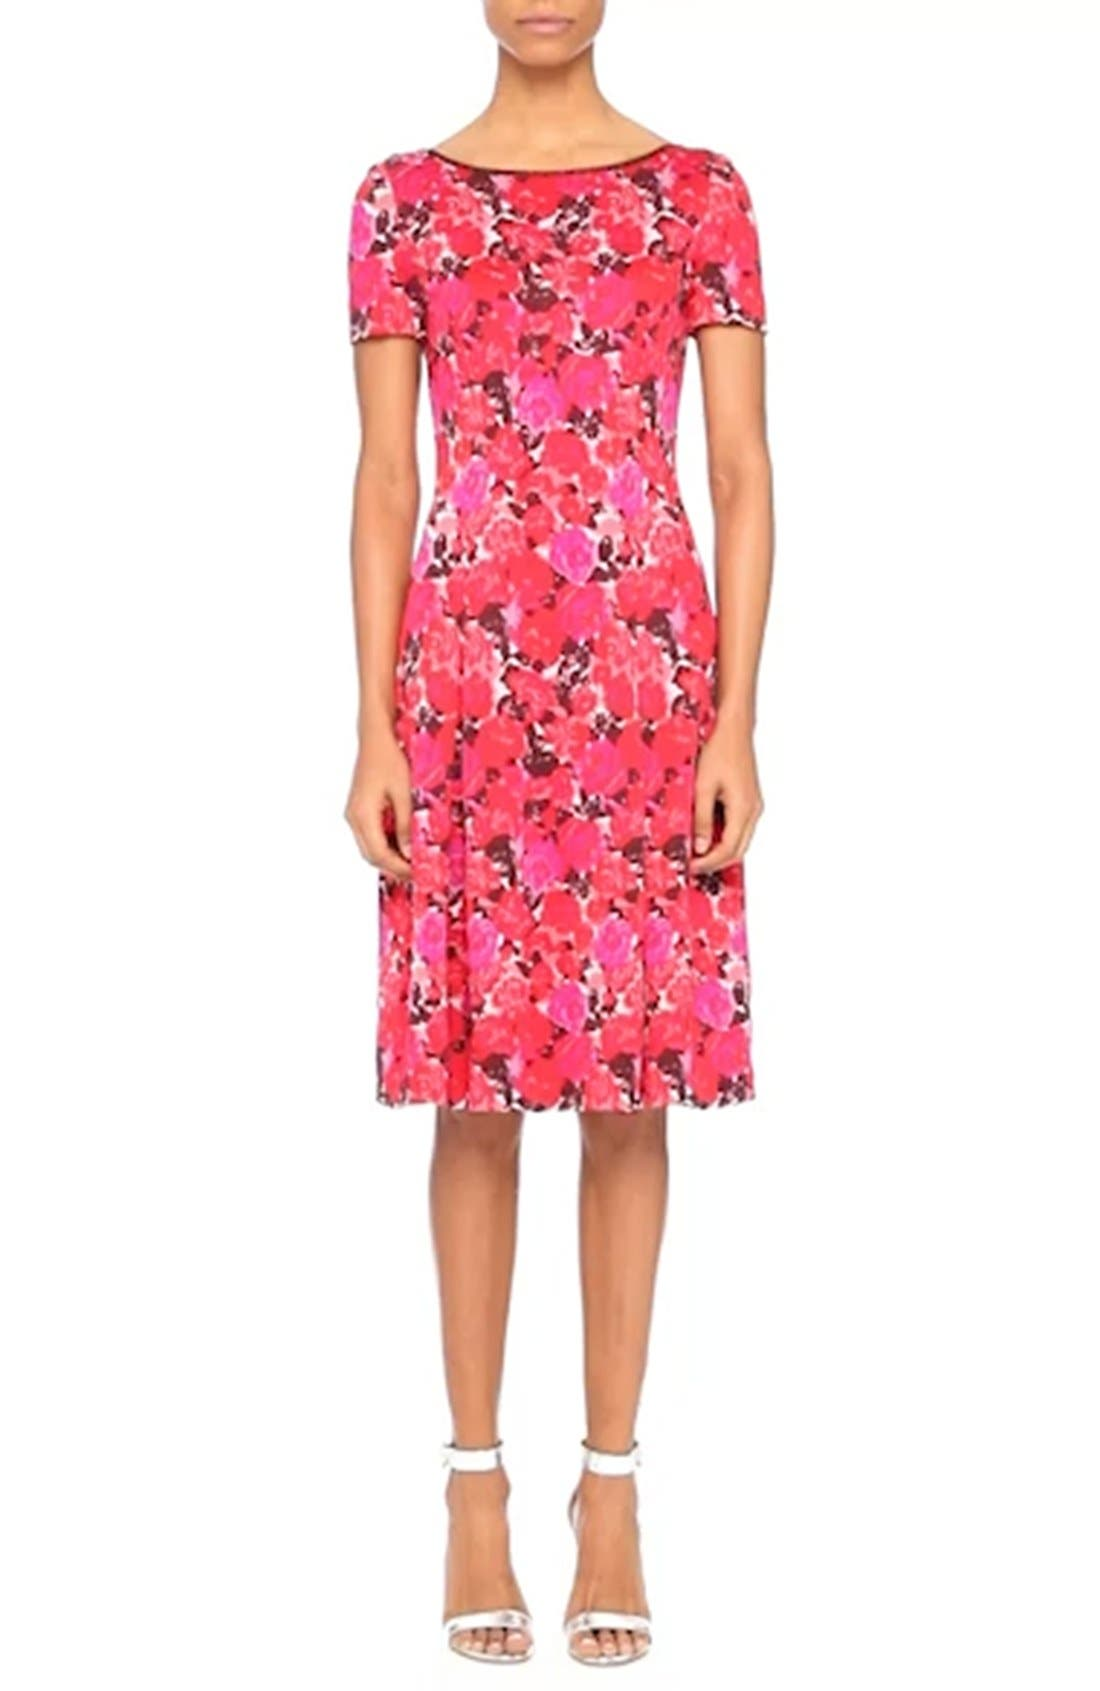 Indian Rose Blister Jacquard Dress,                             Alternate thumbnail 7, color,                             600